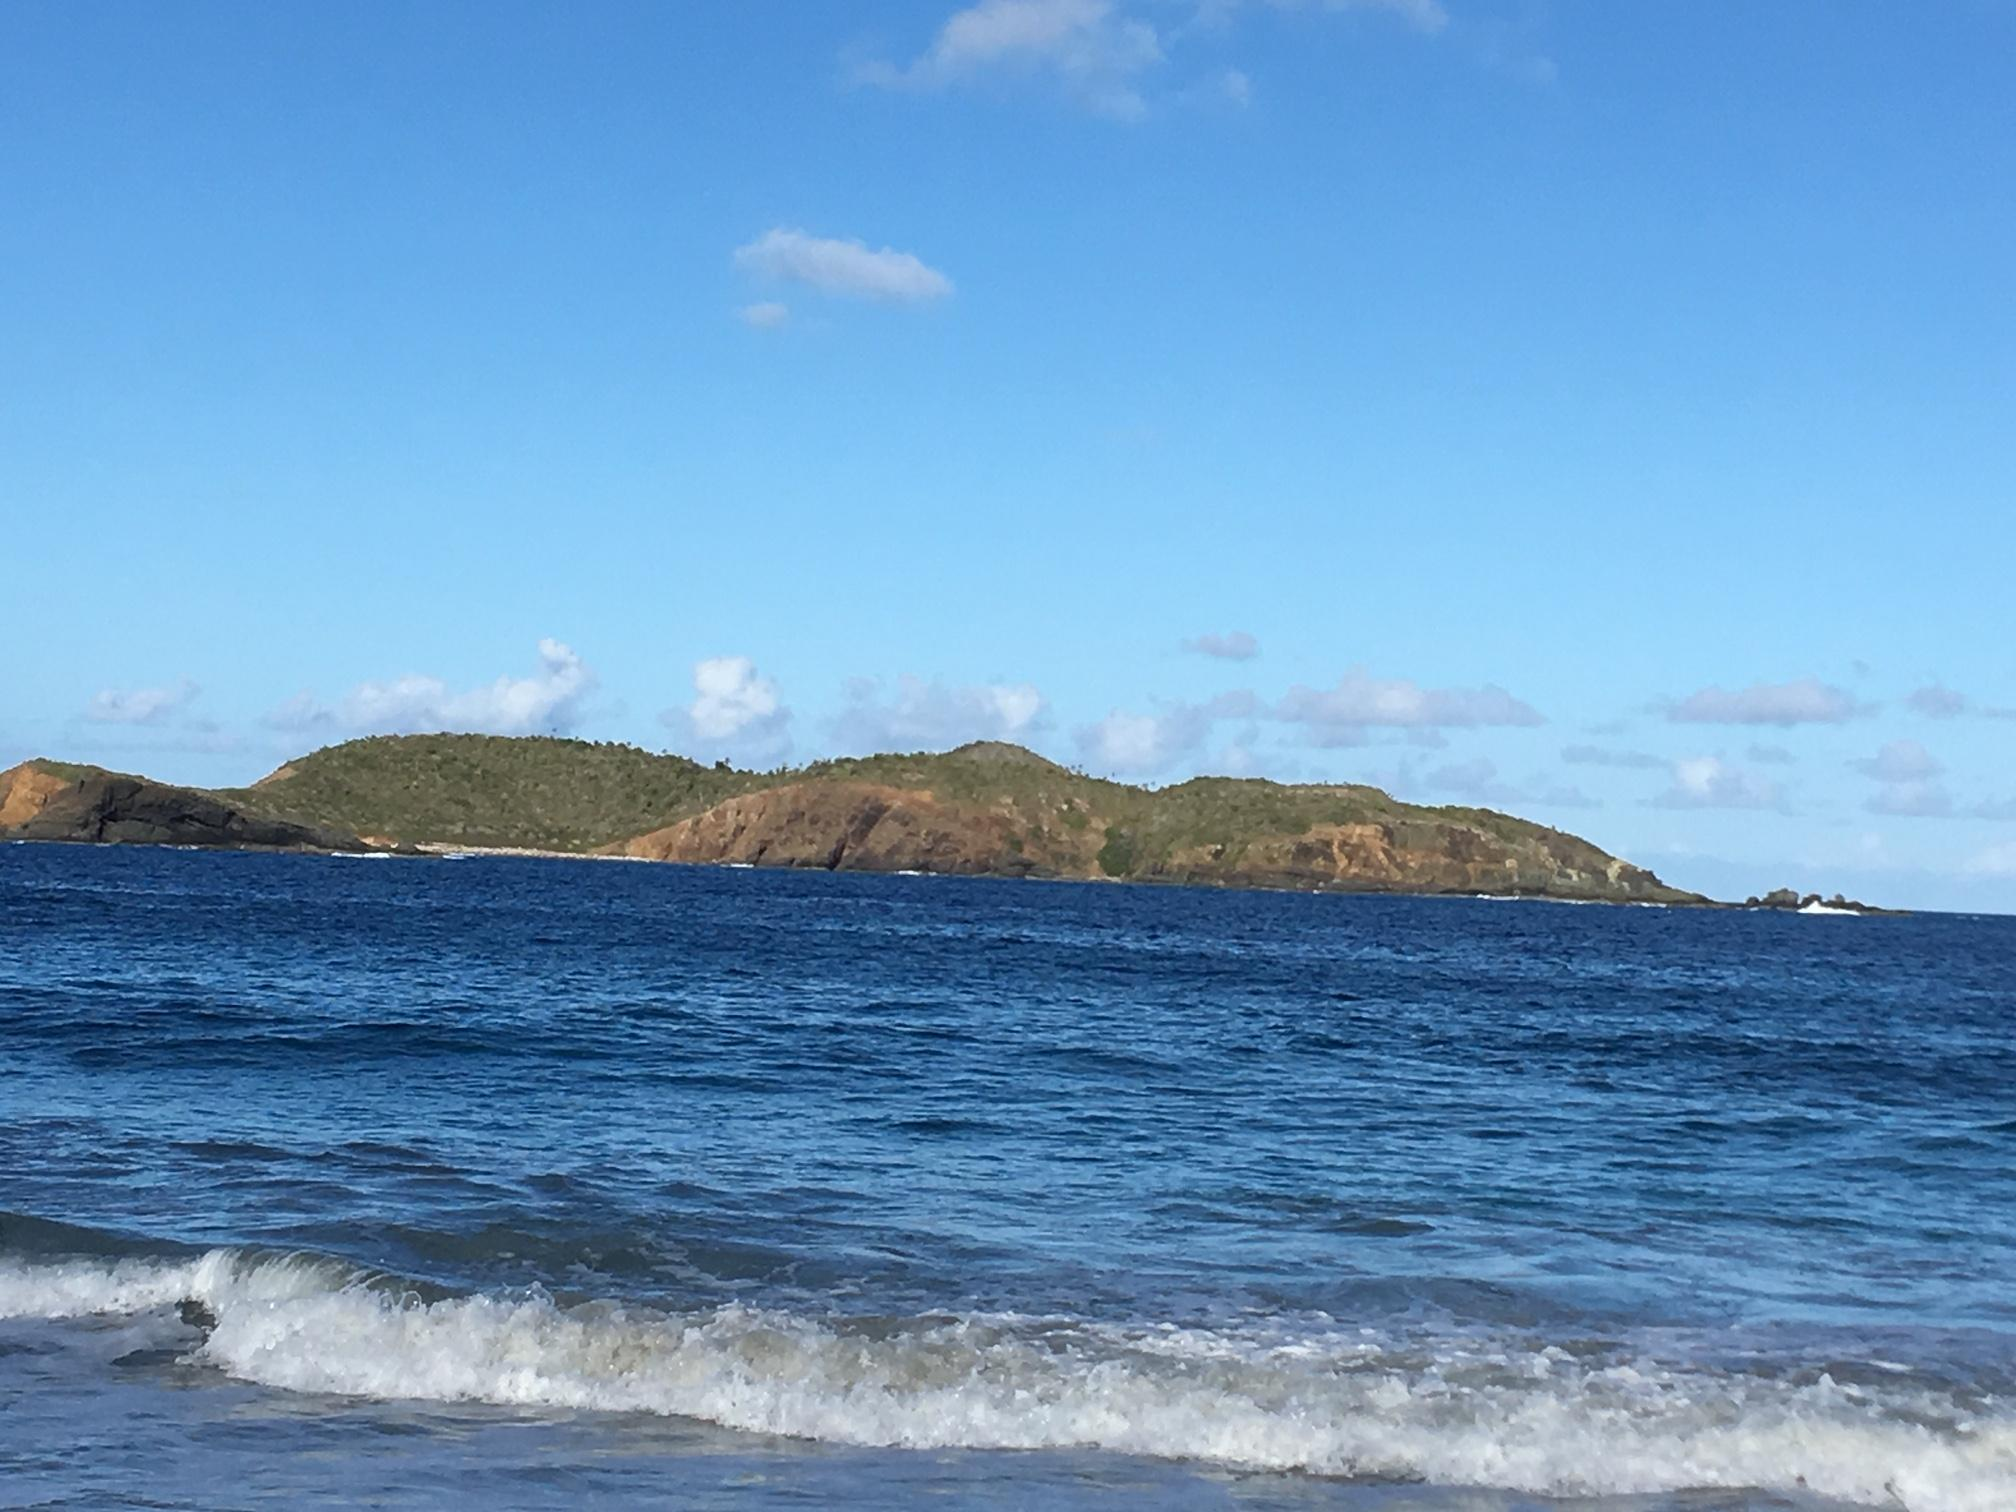 Land for Sale at 11-3 Botany Bay WE 11-3 Botany Bay WE St Thomas, Virgin Islands 00802 United States Virgin Islands